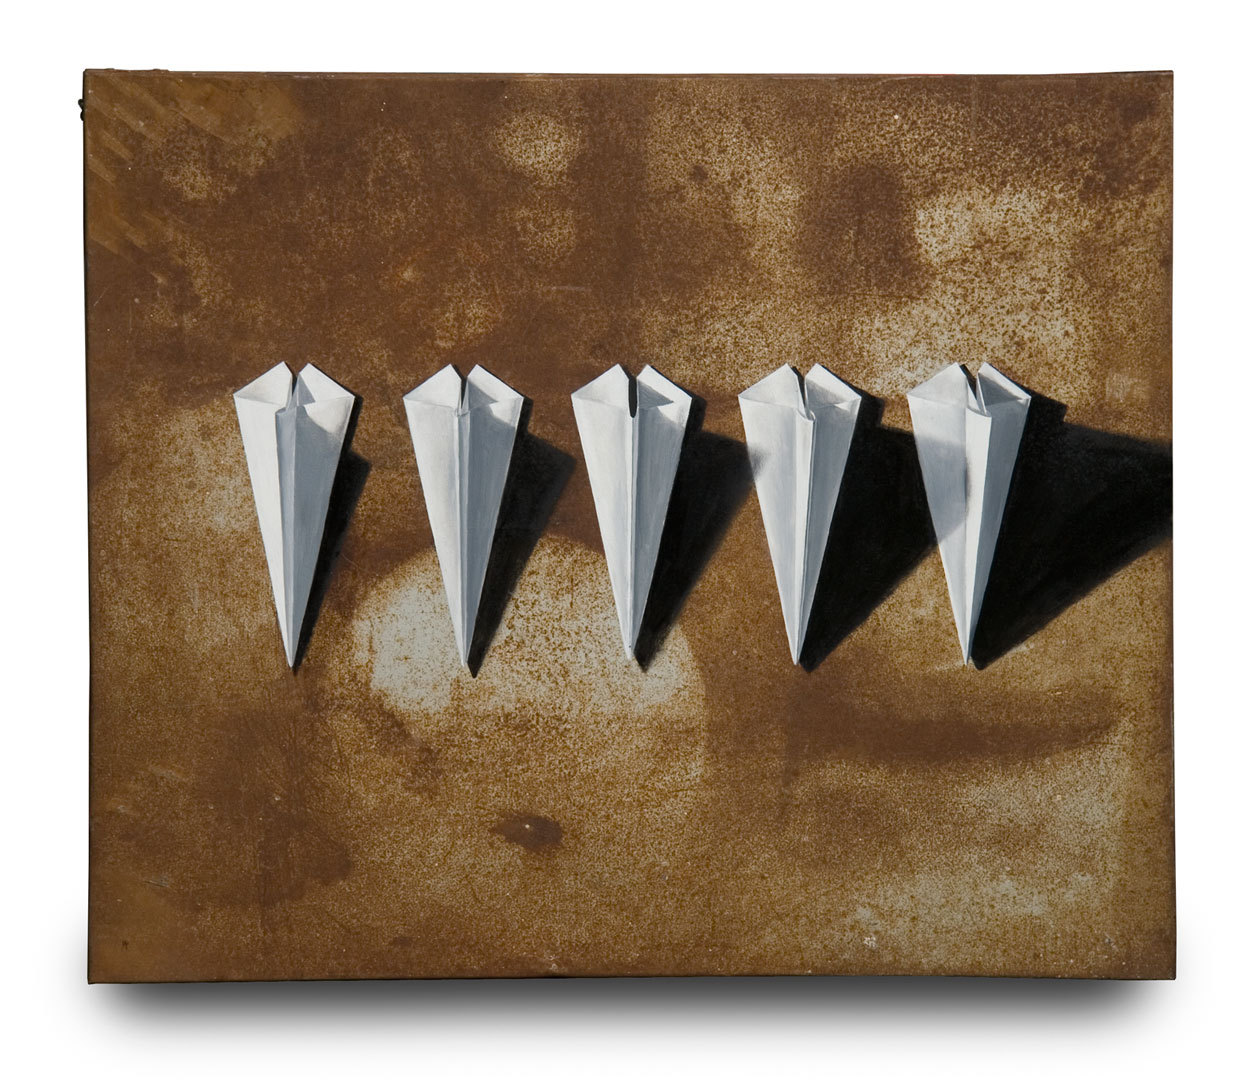 "SUBMISSION: ""Paper Airplanes"" oil painting on scrap sheet metal by Michael Fitts."